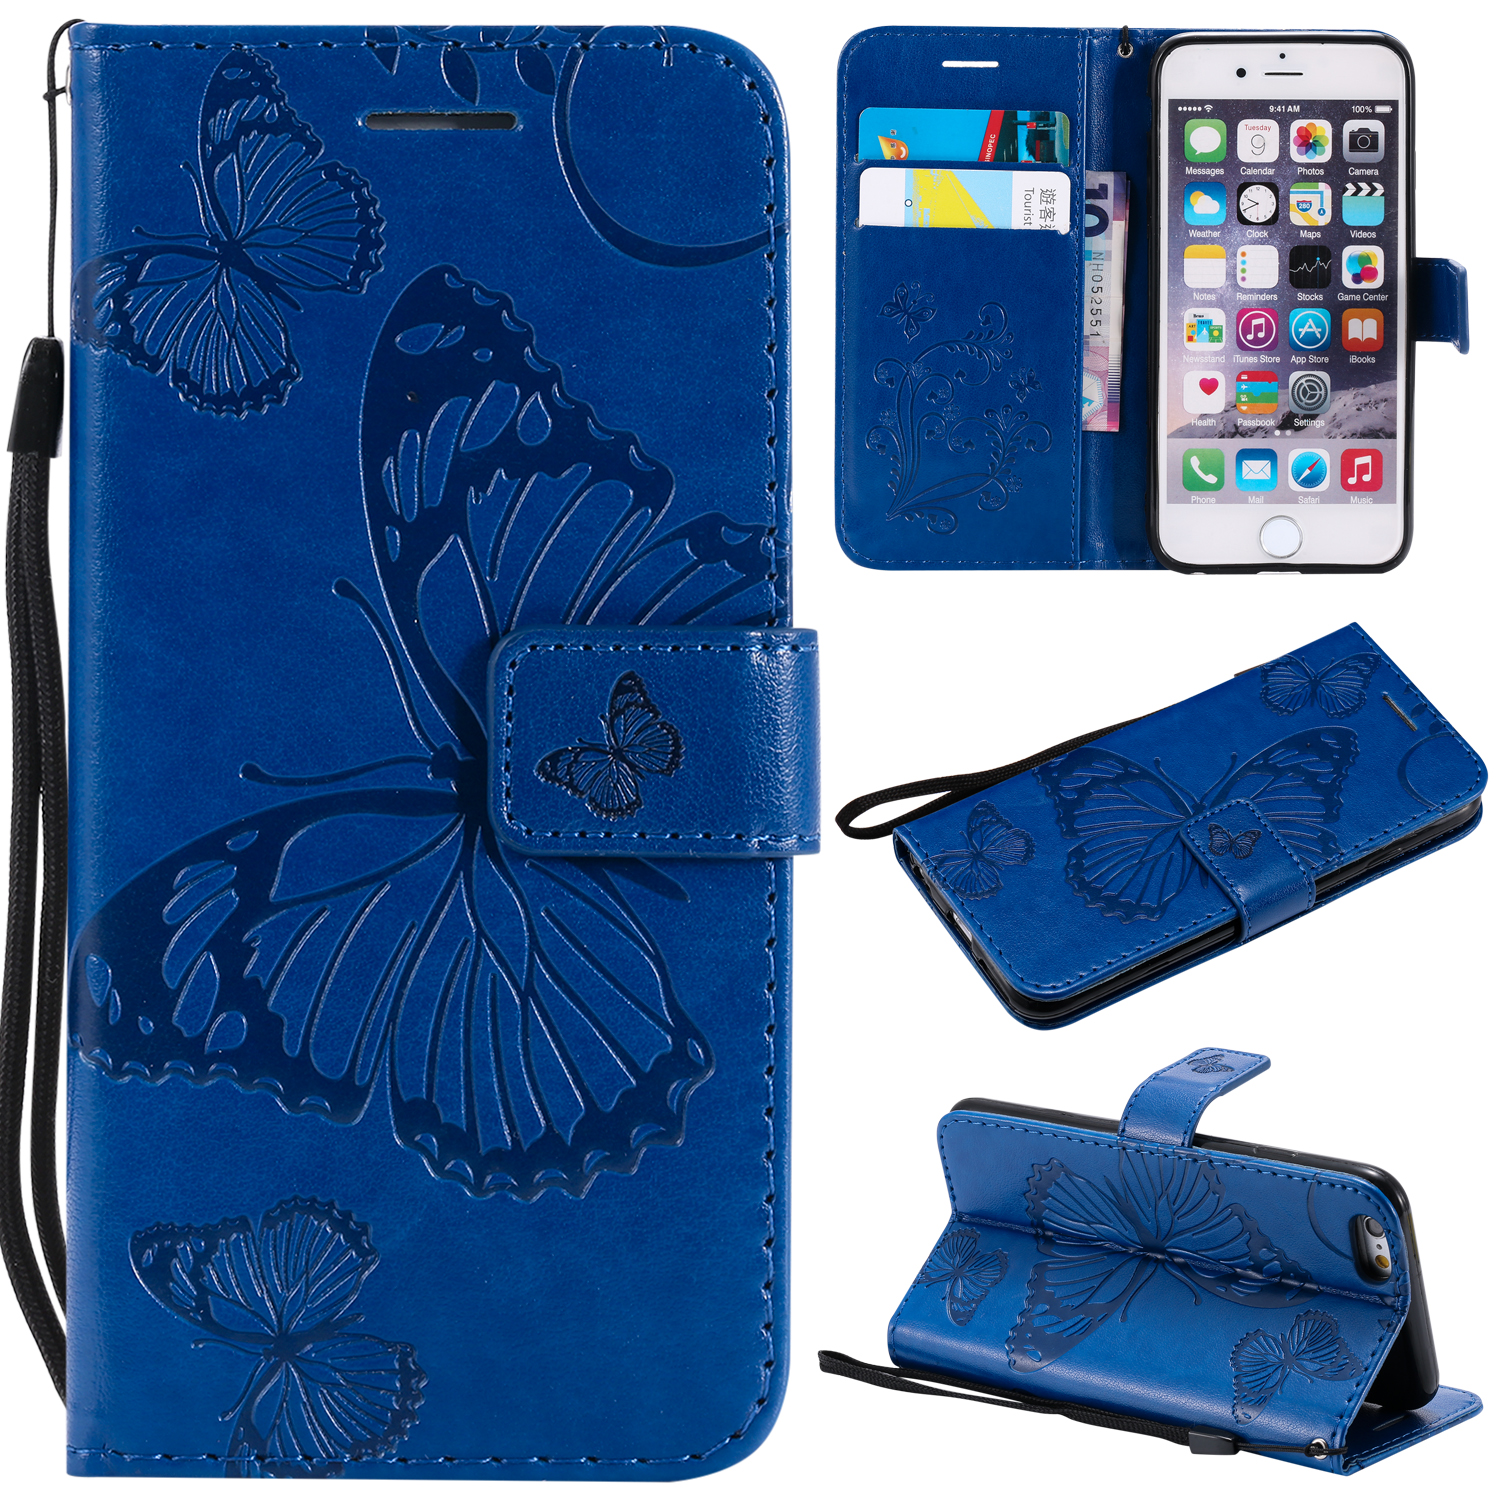 iPhone 6 Plus/ 6S Plus Wallet case, Allytech Pretty Retro Embossed Butterfly Flower Design PU Leather Book Style Wallet Flip Case Cover for Apple iPhone 6 Plus and iPhone 6S Plus, Blue